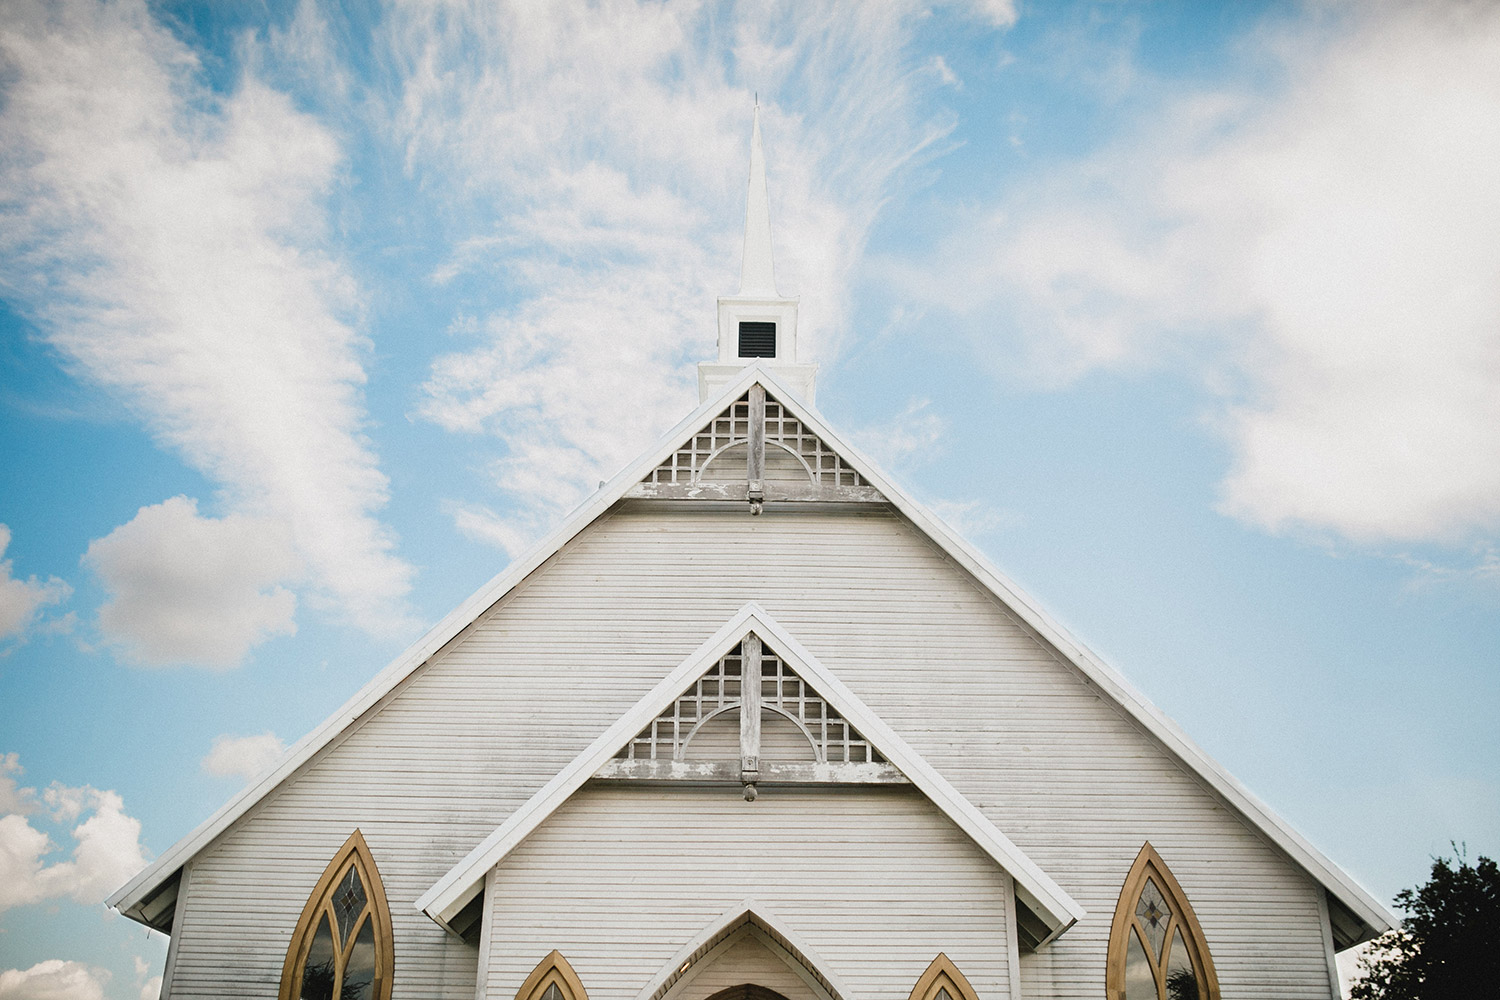 Steeple of the Brooks at Weatherford white country chapel